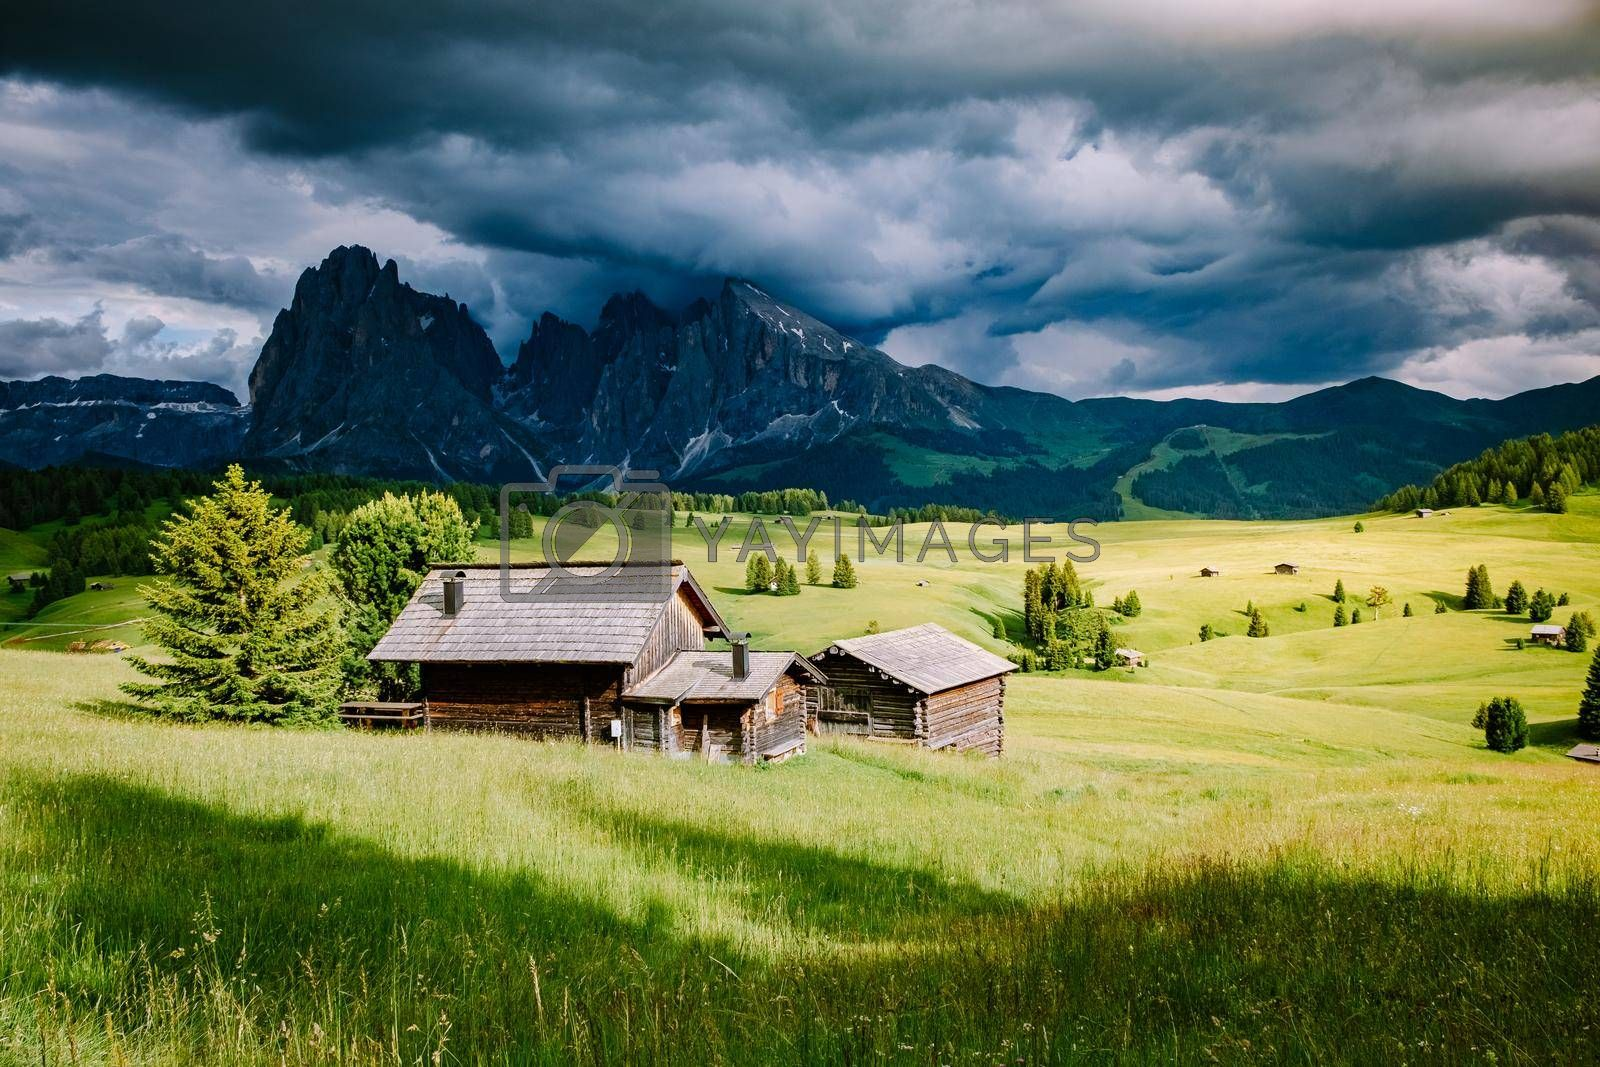 Alpe di Siusi - Seiser Alm with Sassolungo - Langkofel mountain group in background at sunset. Yellow spring flowers and wooden chalets in Dolomites, Trentino Alto Adige, South Tyrol, Italy, Europe. Summer weather with dark clouds rain